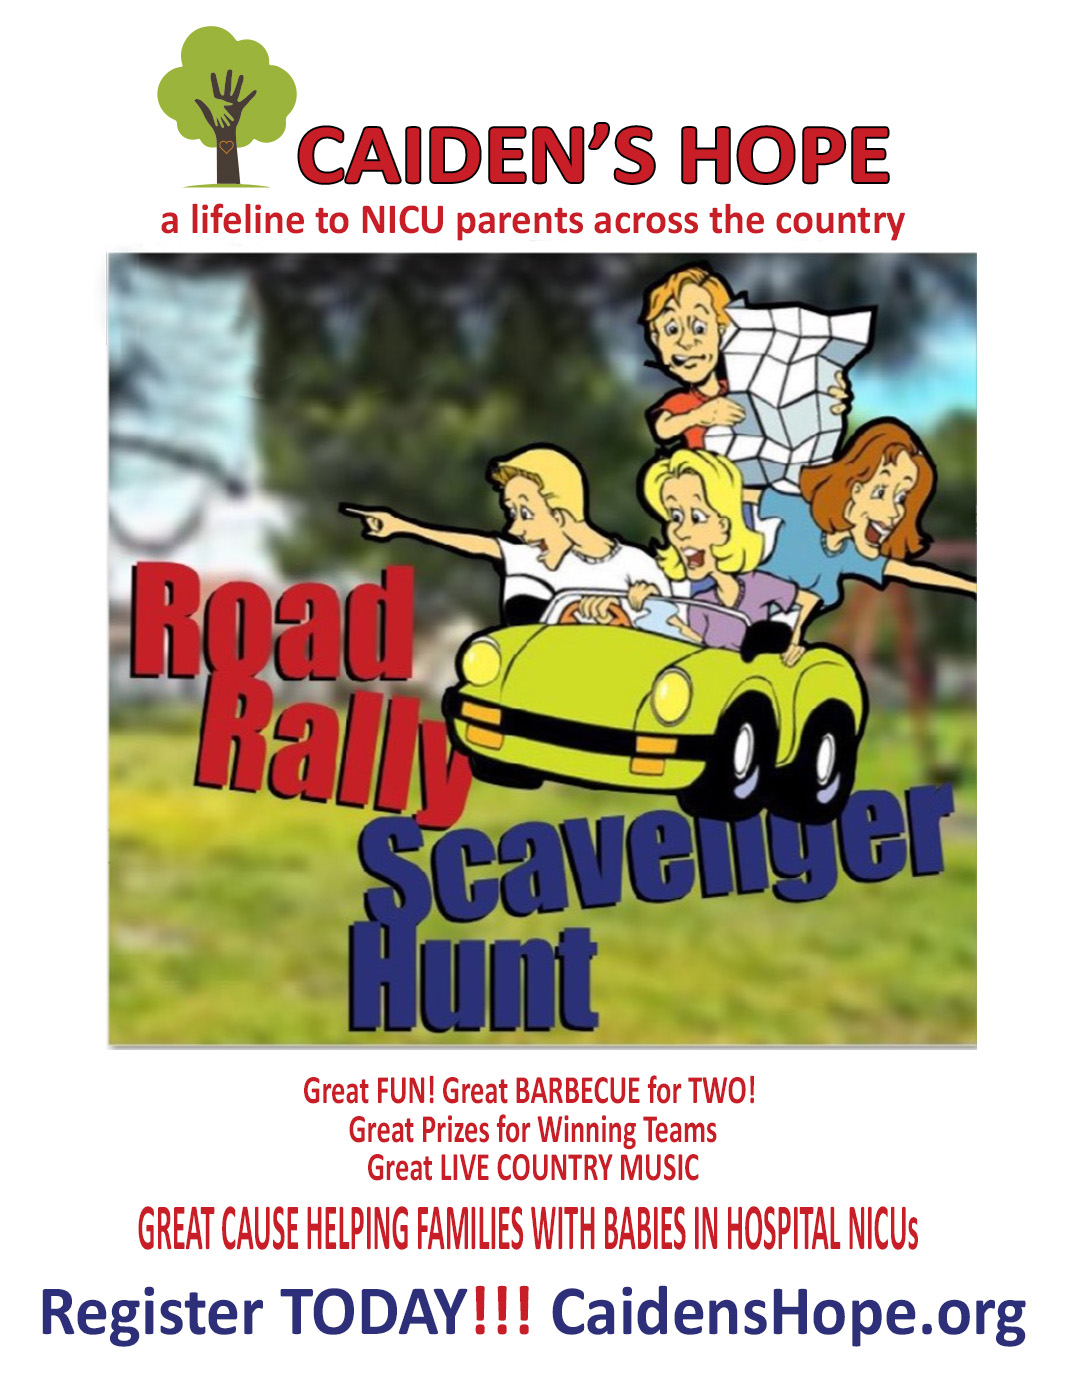 Halloween Road Rally to benefit Caiden's Hope Foundation — Helping provide much-needed funds to families with tiny premature infants struggling for life in hospital NICUs